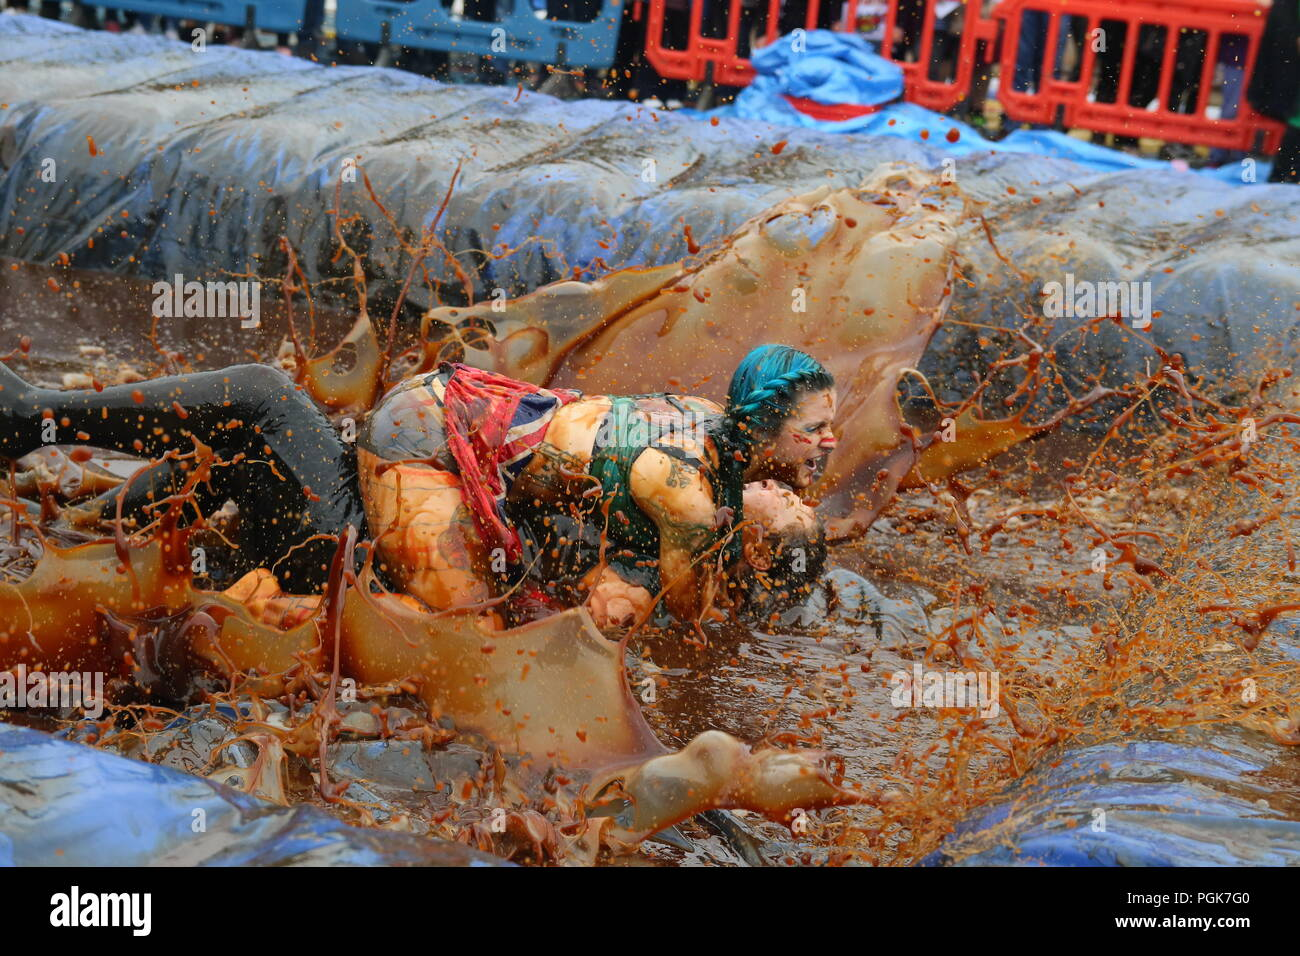 Stacksteads, Bacup, Lancashire, UK. 27 August 2018.The  World Gravy Wrestling Championships at the Rose 'n Bowl, Stacksteads to raise funds for the East Lancashire Hospice and competitors nominated charities.     A wild and whacky wrestling competition in a 16,000 litre pool full of Lancashire Gravy! All our contestants get sponsorship and really give it their all to raise Credit: Phil Taylor/Alamy Live News - Stock Image